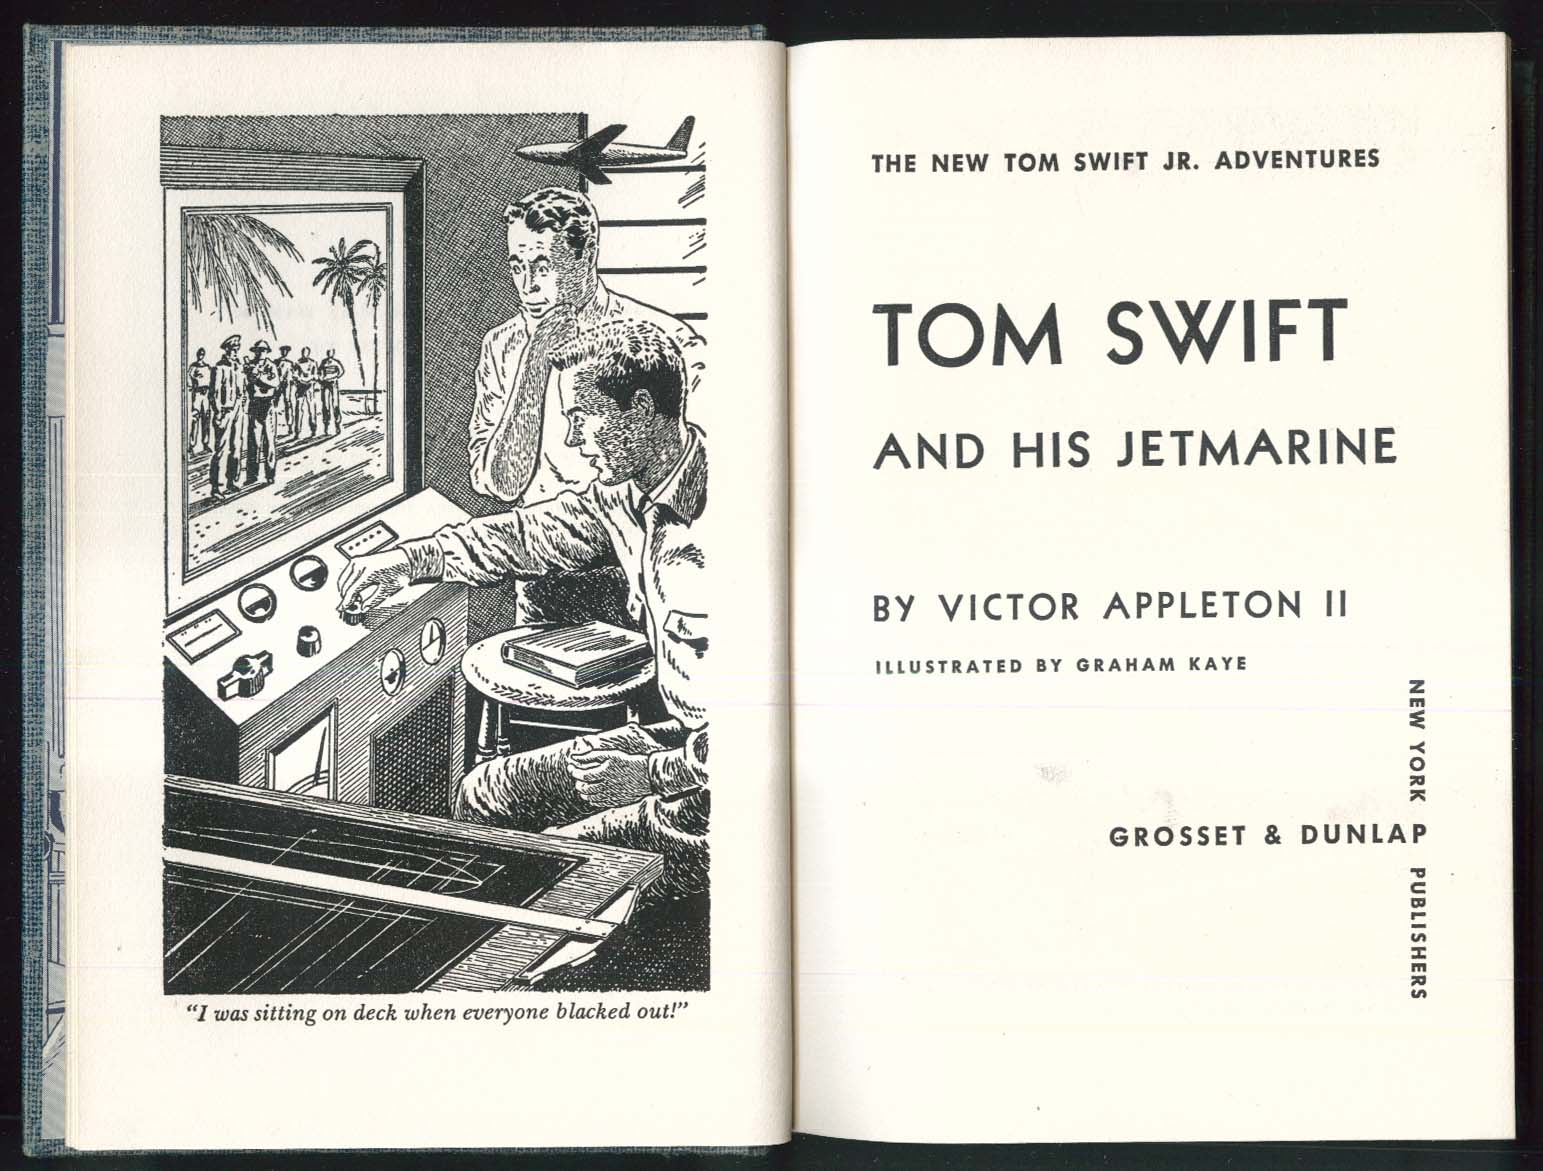 Tom Swift & His Jetmarine 1954 dustjacket version